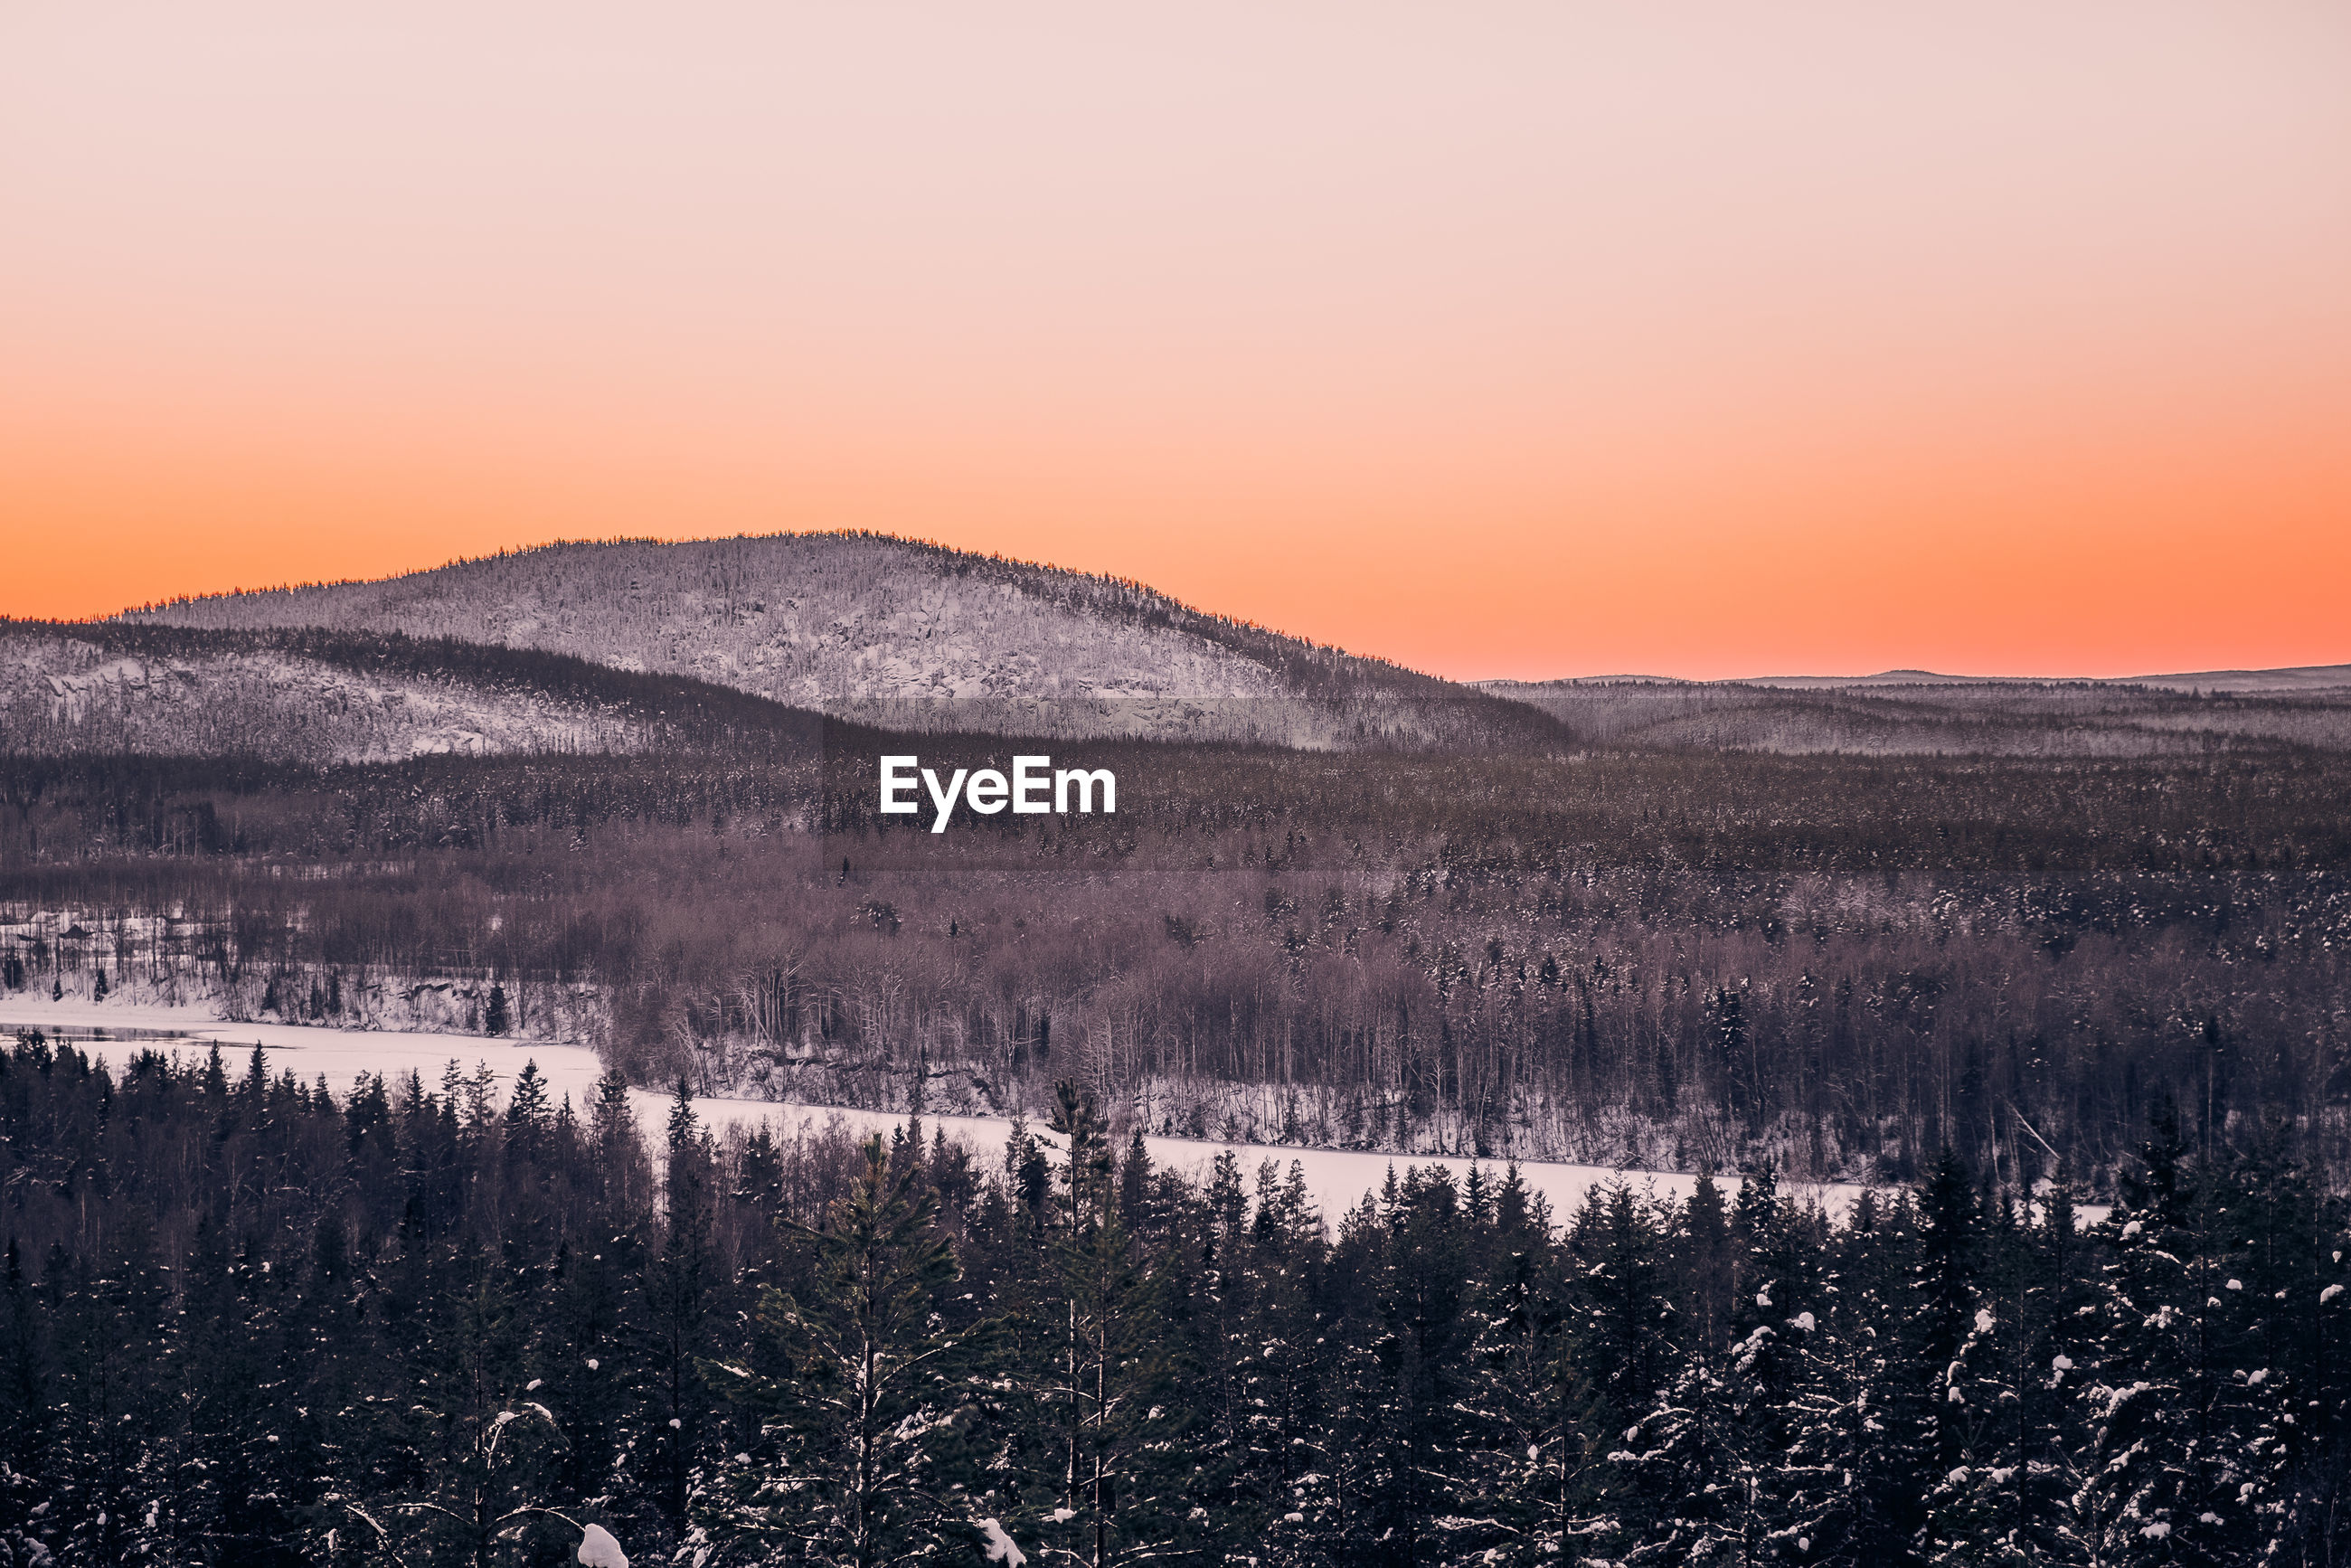 SCENIC VIEW OF LAND AGAINST CLEAR SKY DURING SUNSET